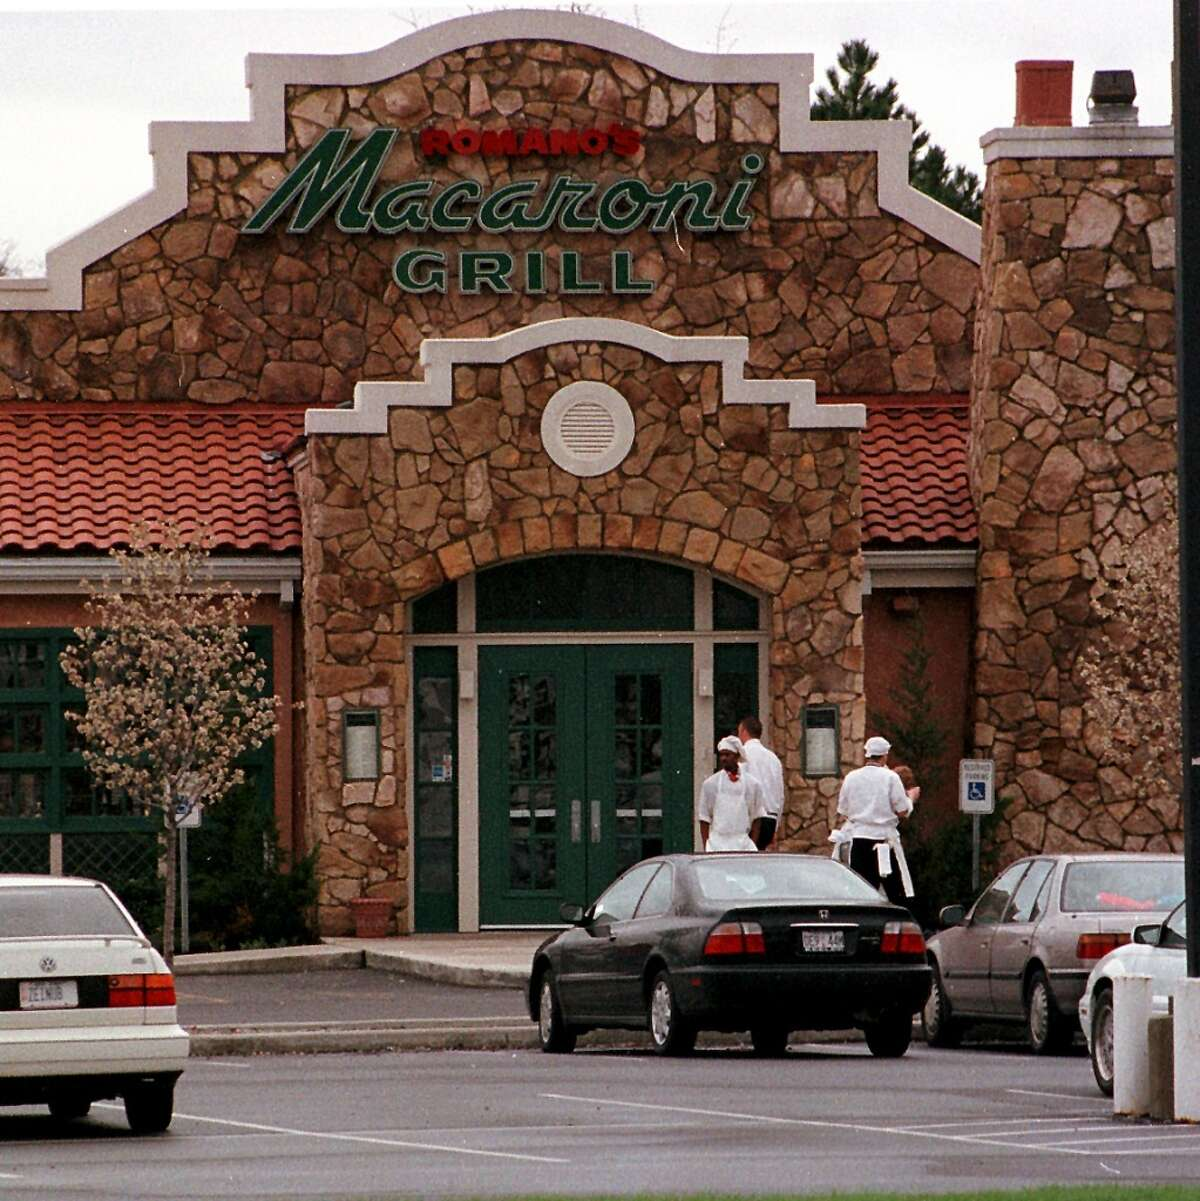 Macaroni Grill went into a significantly overhauled building that previously was home to Chi-Chi's and Beefsteak Charlie's restaurants, at Wolf and Metro Park roads. The restaurant closed abruptly in mid-March.